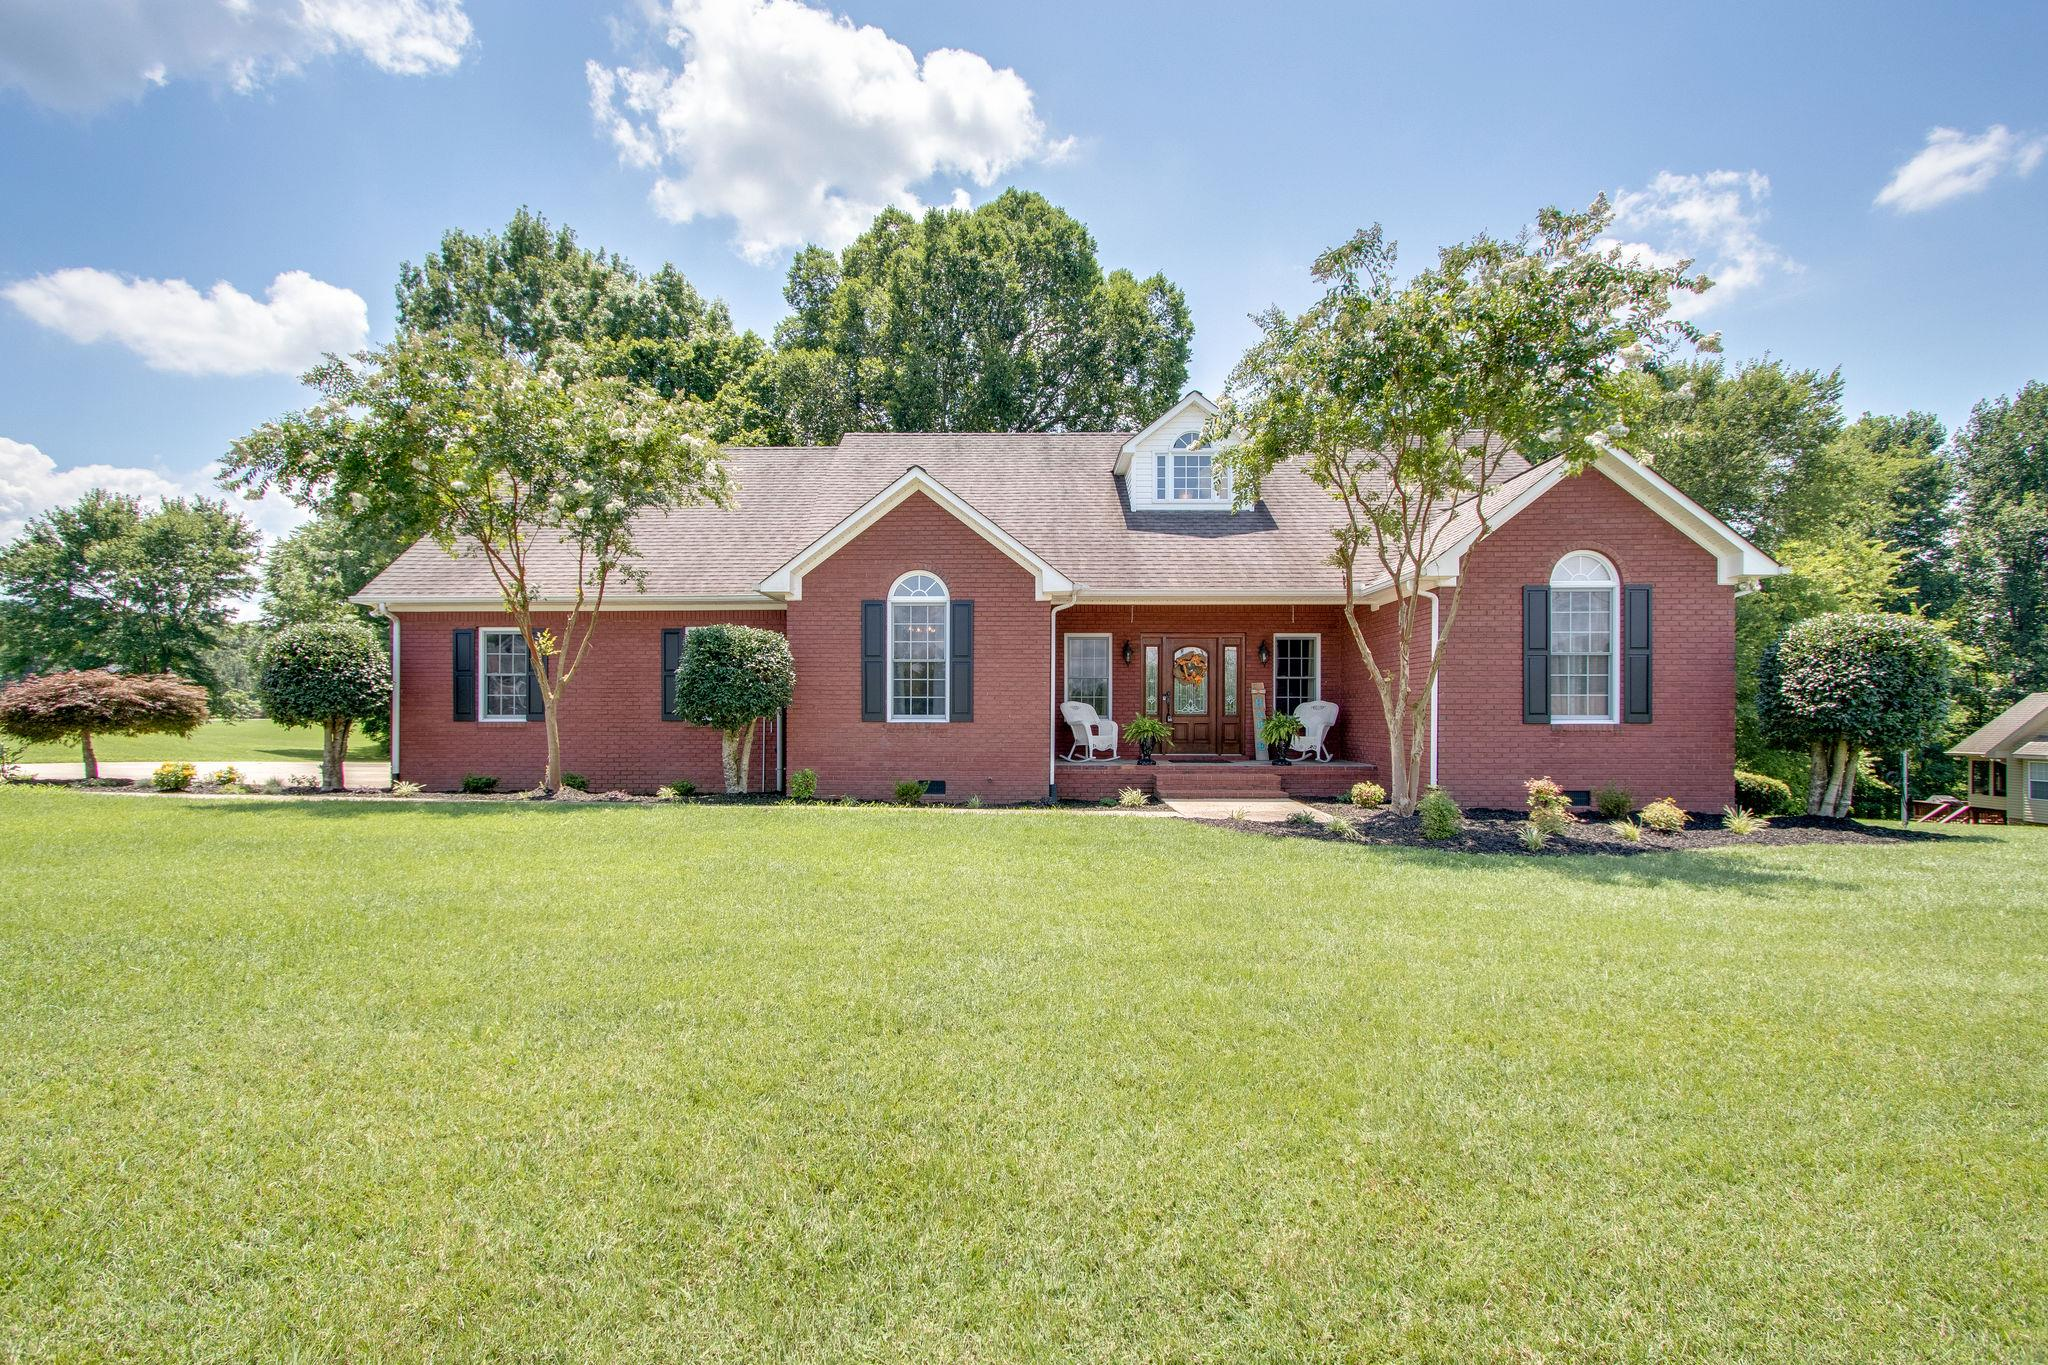 105 Oakview Dr W., Brush Creek, TN 38547 - Brush Creek, TN real estate listing